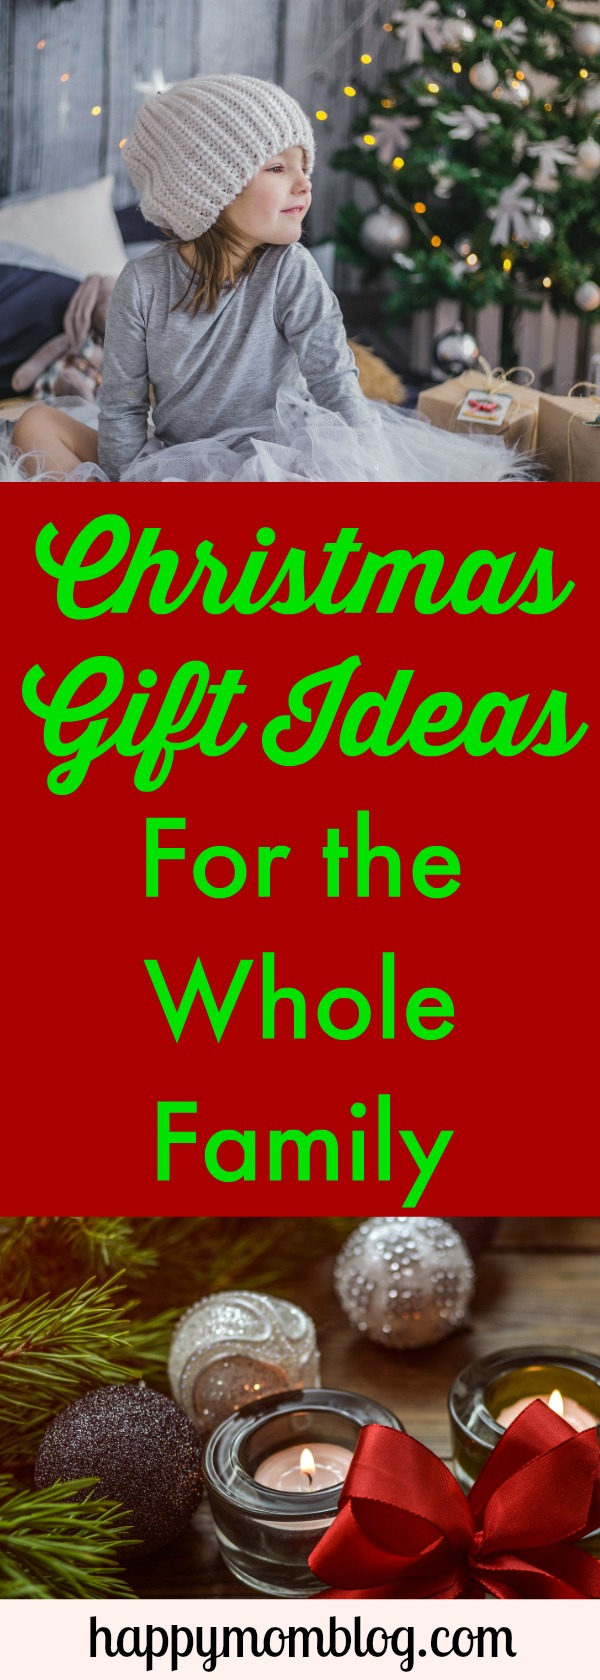 Christmas Gift Ideas the Whole family will actually love! This is not your average gift guide! They will love this stuff!